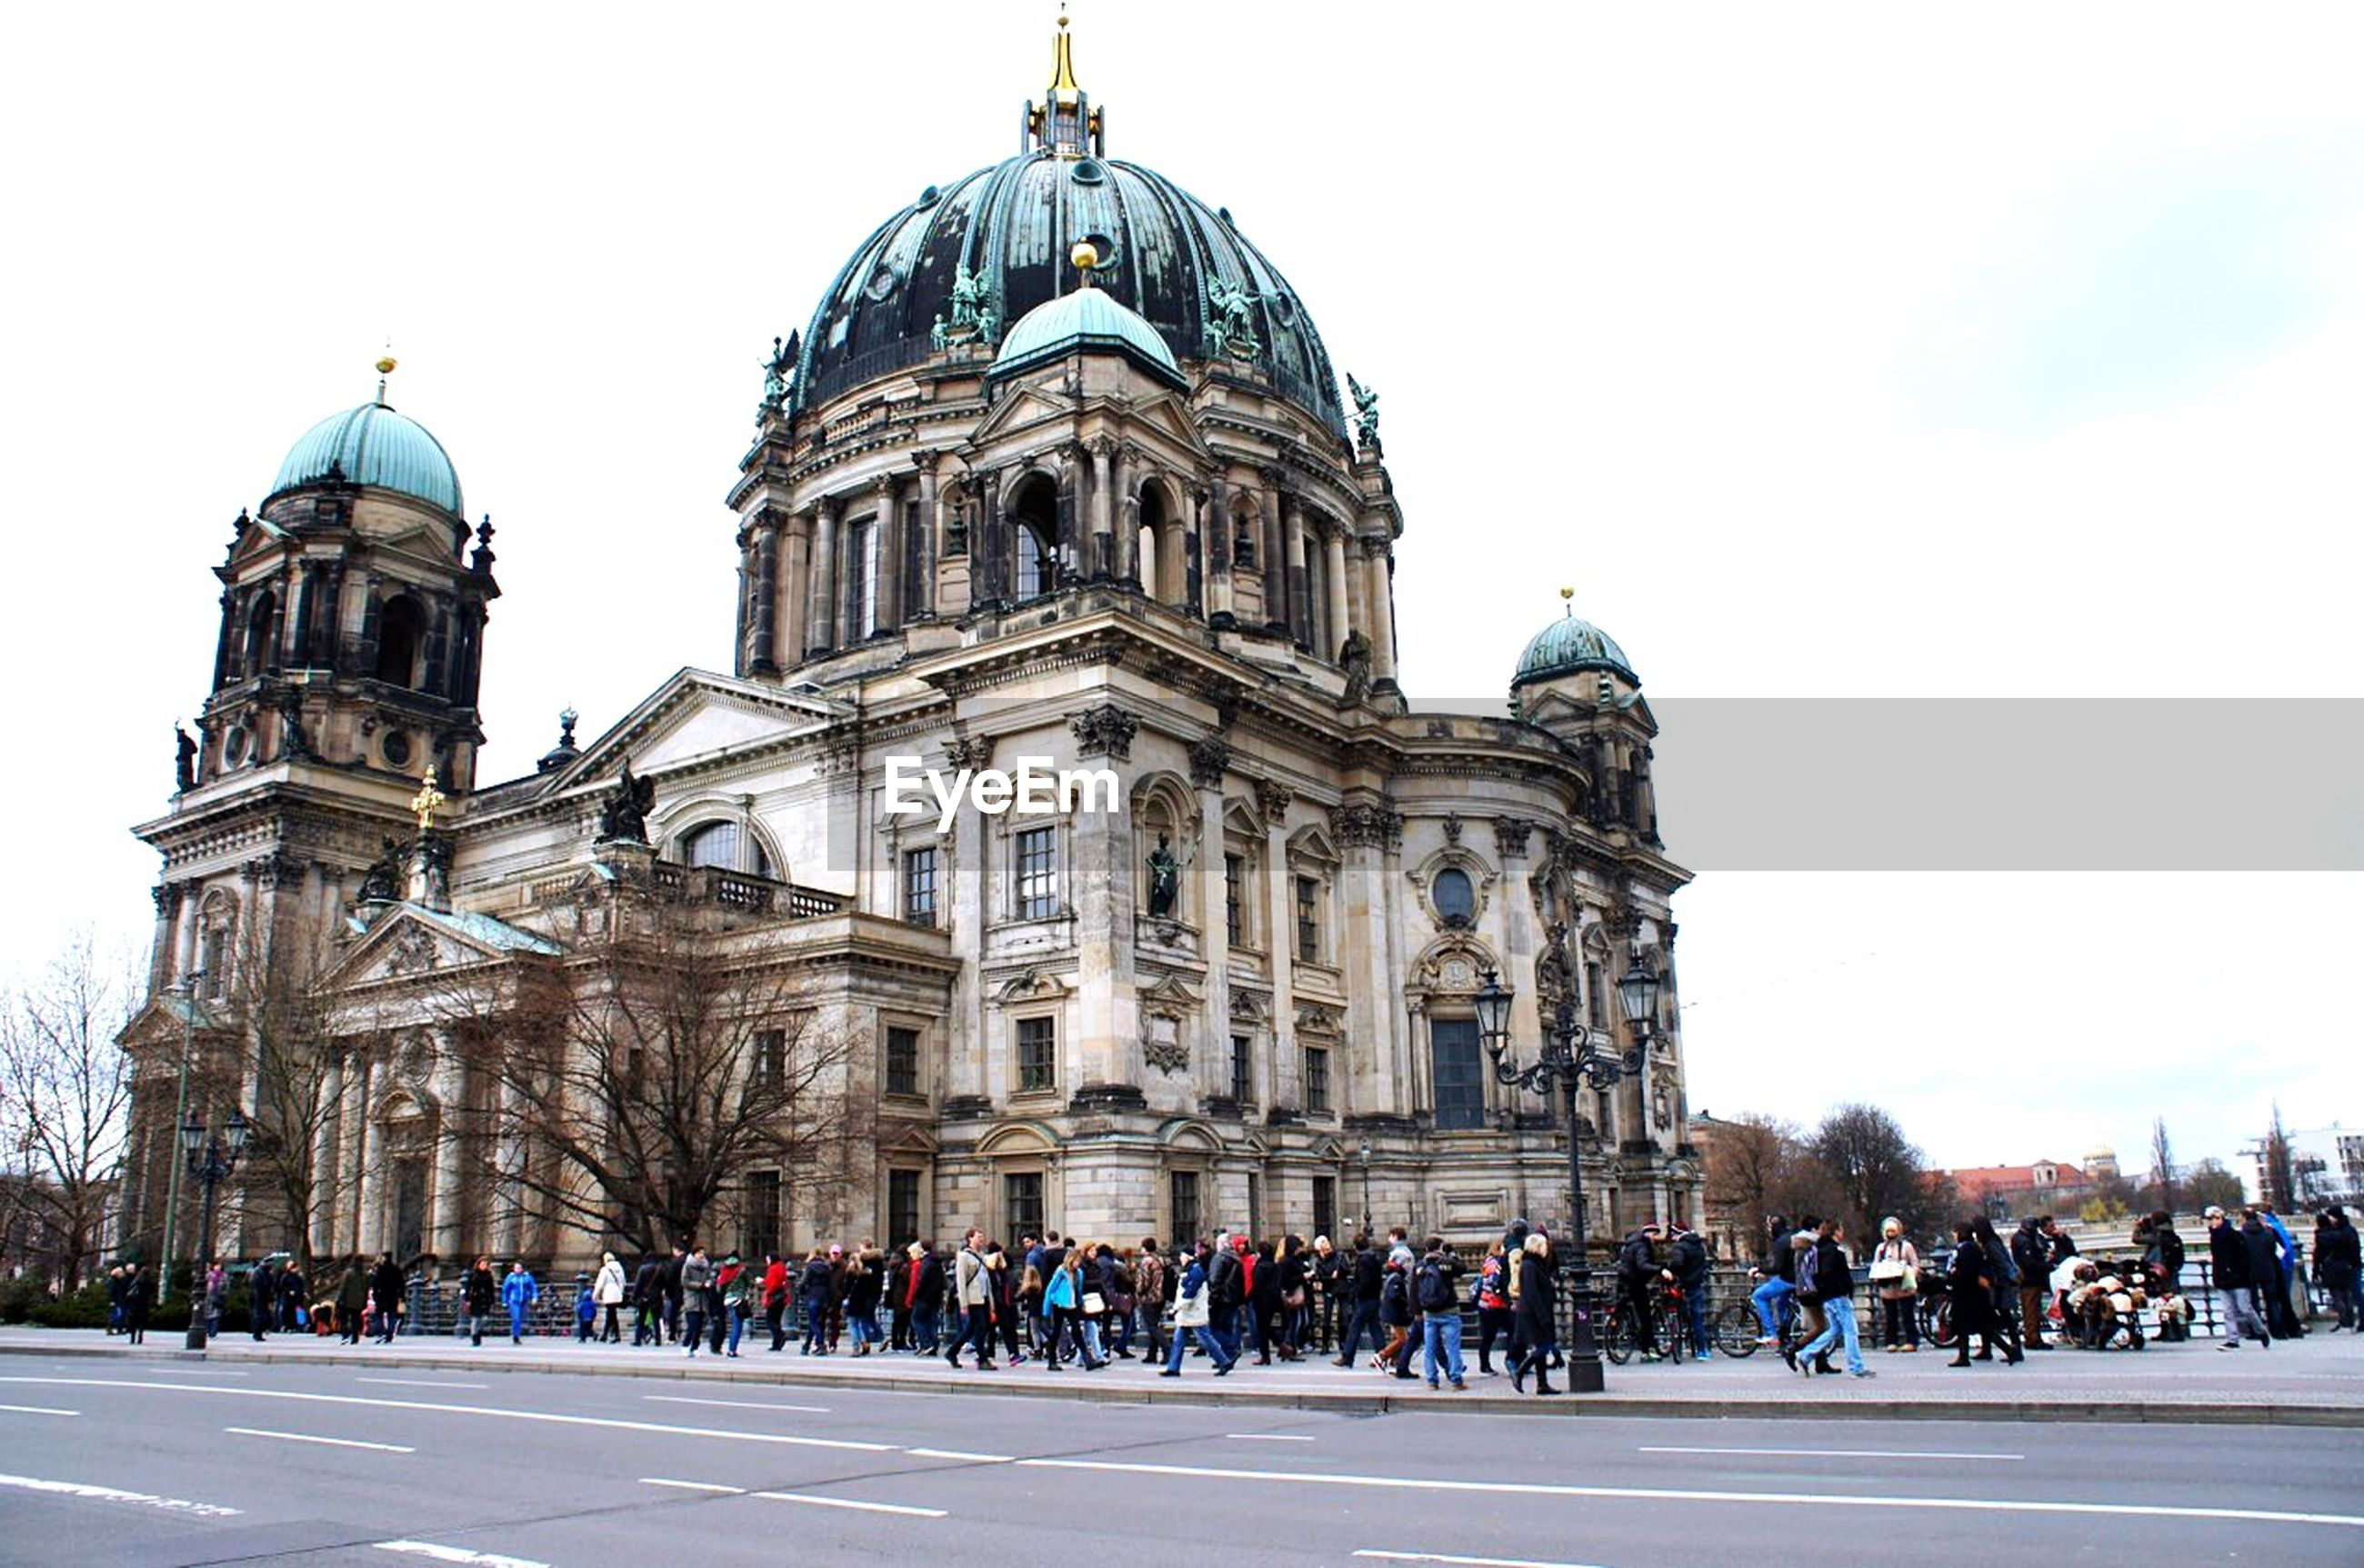 architecture, building exterior, large group of people, built structure, religion, famous place, place of worship, travel destinations, tourism, church, international landmark, spirituality, cathedral, dome, travel, tourist, person